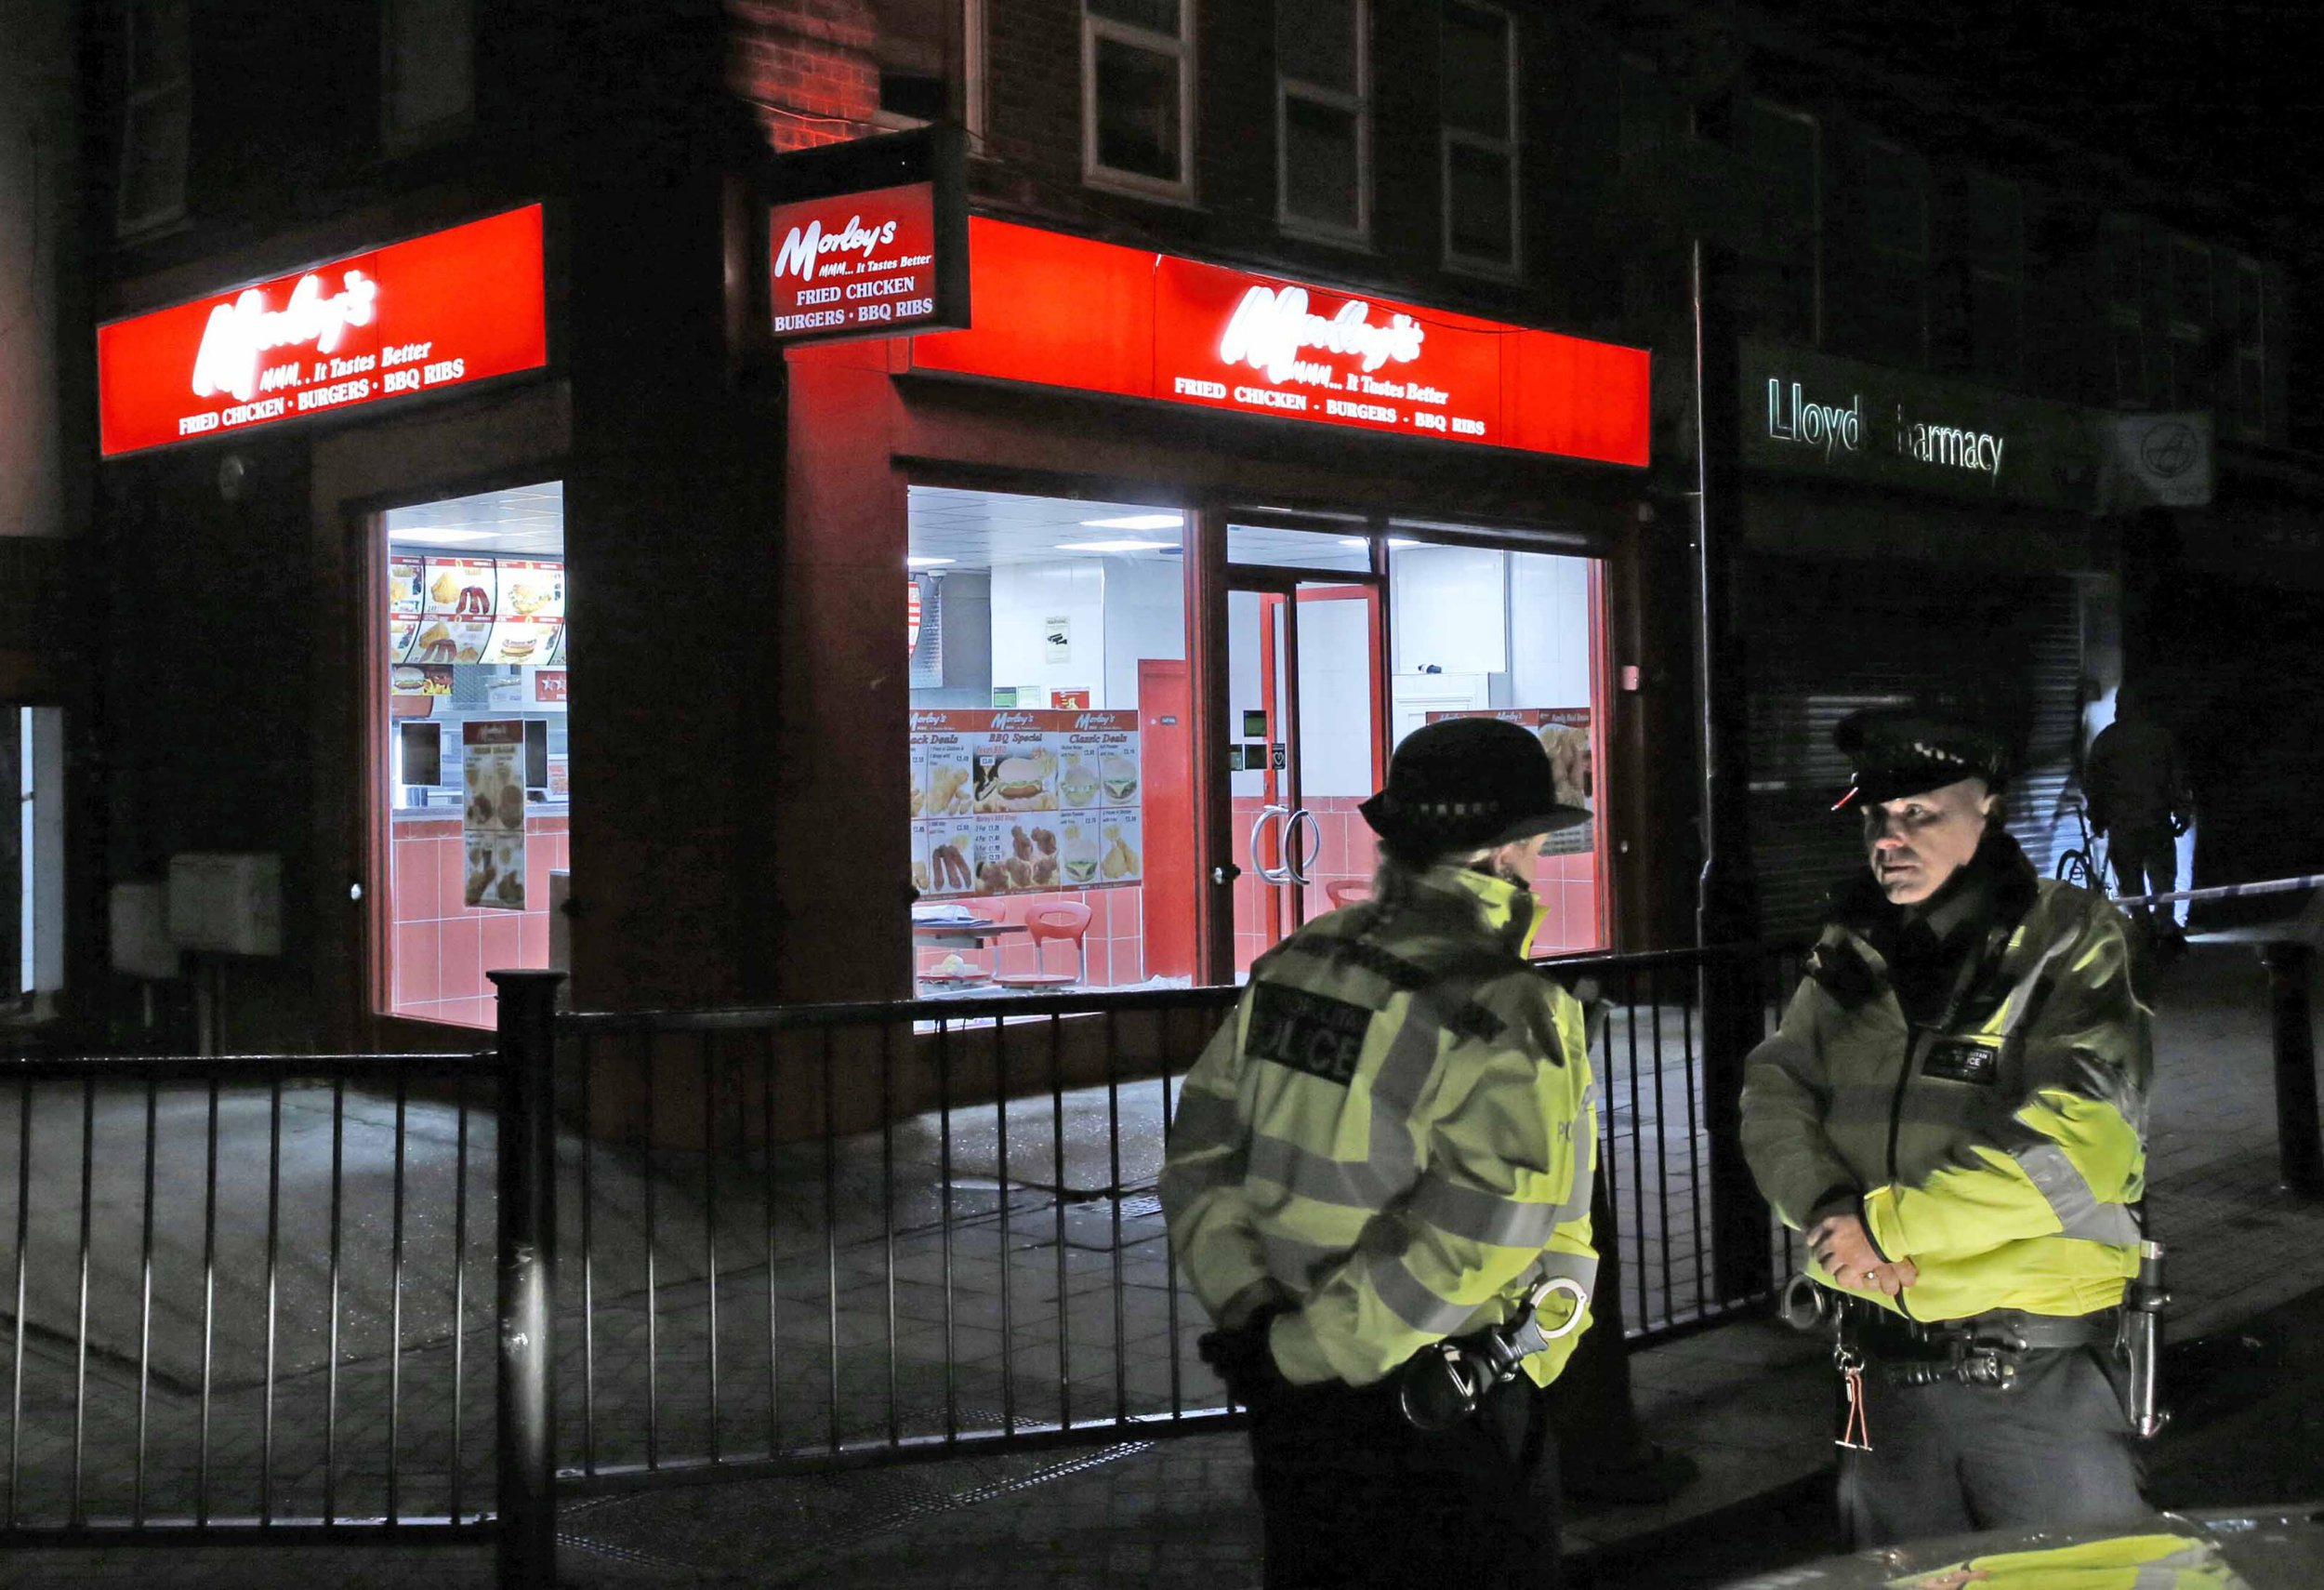 A teenage boy has been stabbed to death in south-east London.A teenage boy has been stabbed to death in south-east London. The victim, 15, was rushed to hospital after being found with knife wounds in Bellingham, Lewisham on Thursday night. Despite efforts to save him the boy was pronounced dead shortly after 8.10pm. His next of kin are aware. Police and paramedics were scrambled to the scene in Randlesdown road at about 5.20pm. ? Nigel Howard / Evening Standard / eyevine Contact eyevine for more information about using this image: T: +44 (0) 20 8709 8709 E: info@eyevine.com http://www.eyevine.com